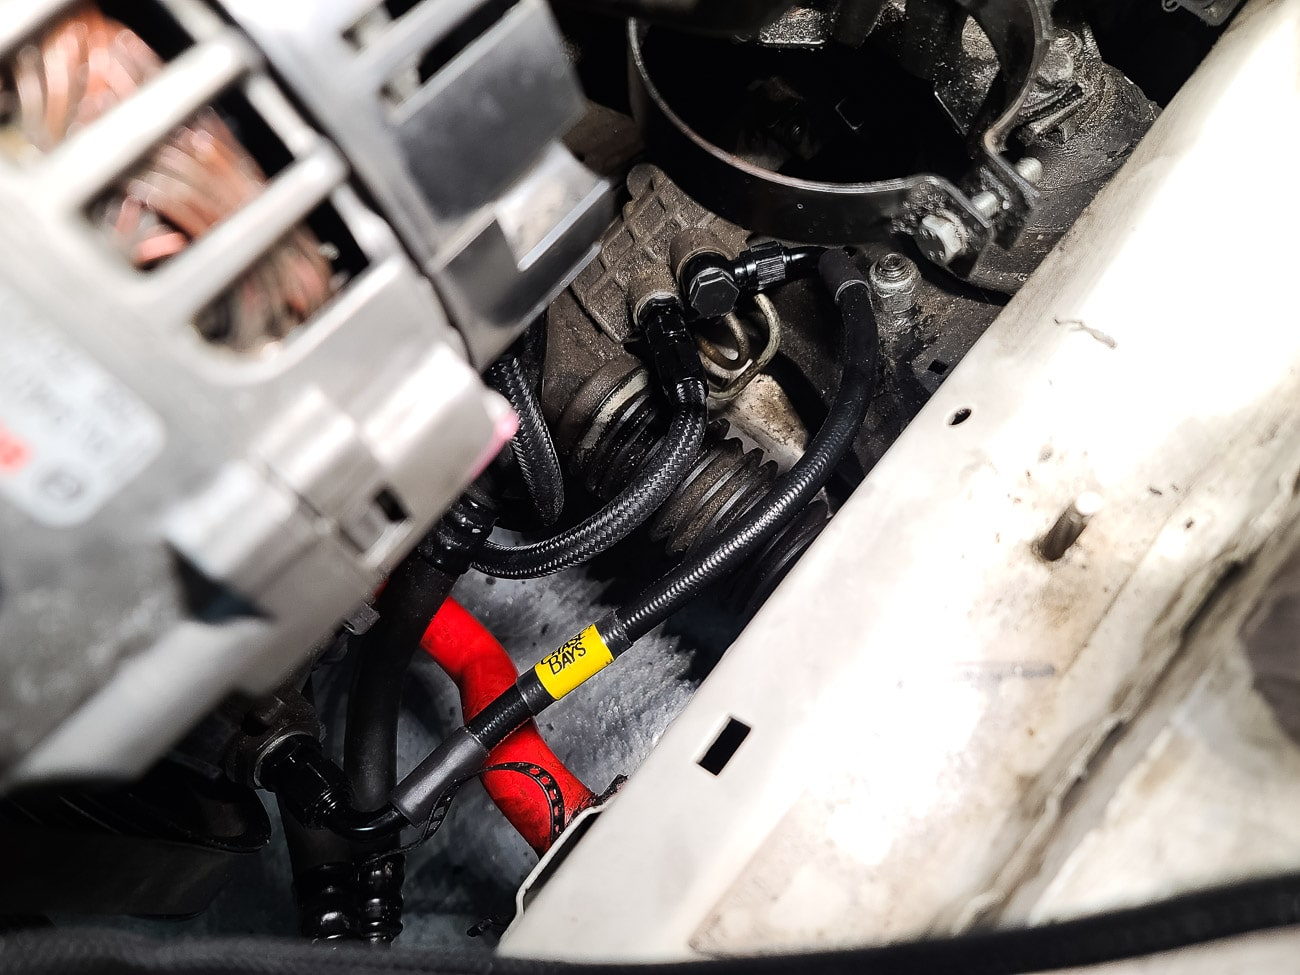 E46 M3 Power Steering Install DIY - Chase Bays